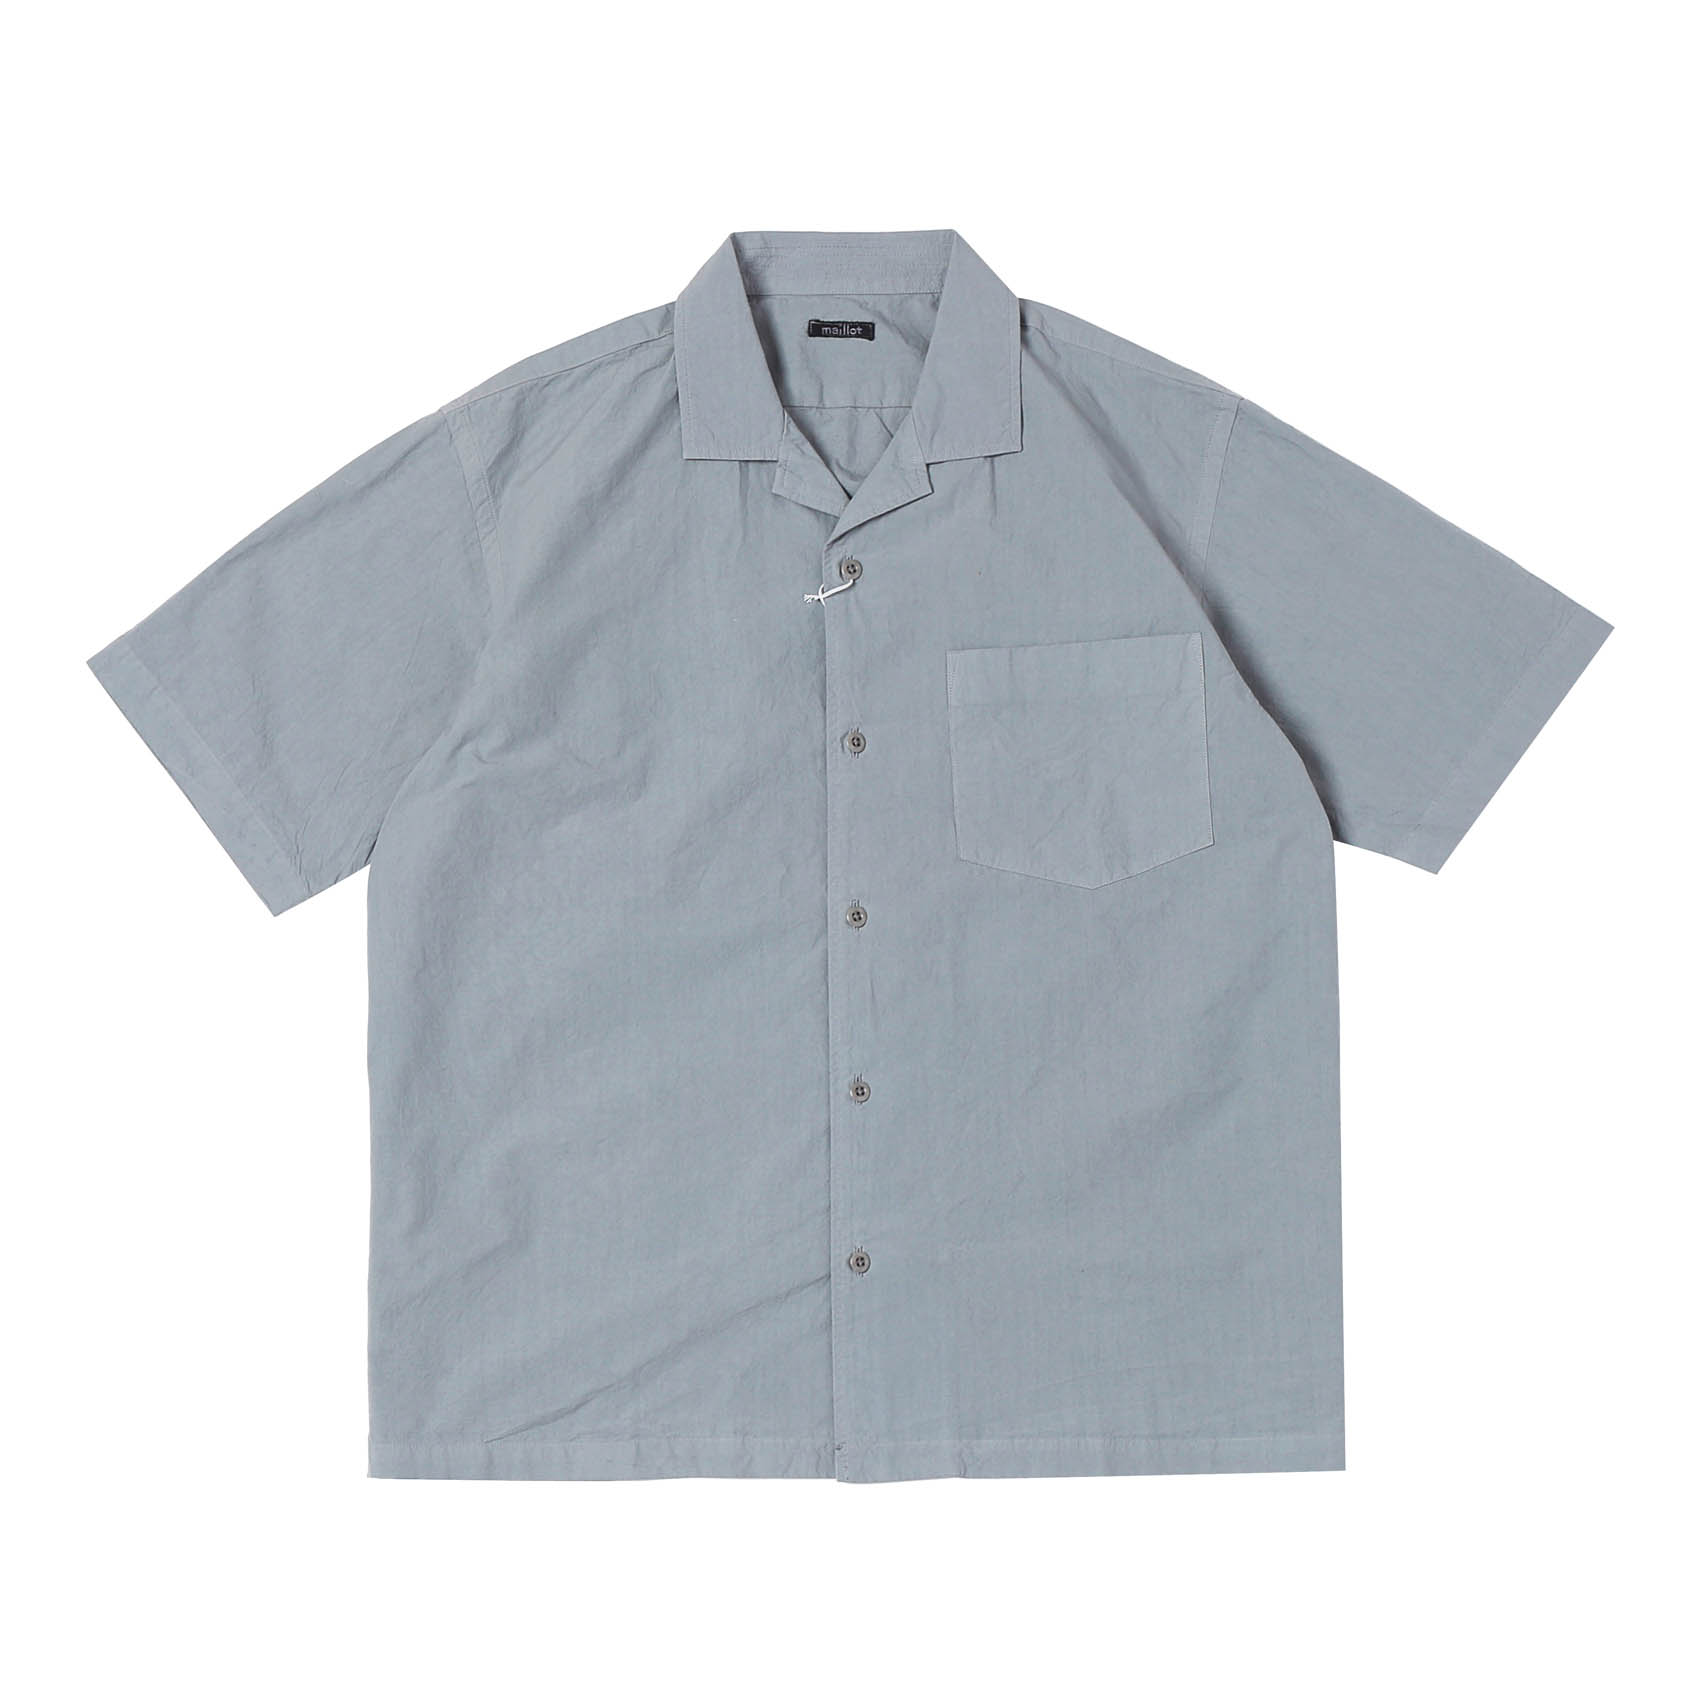 MATURE RUB COTTON S/S OPEN SHIRT - LIGHT GRAY